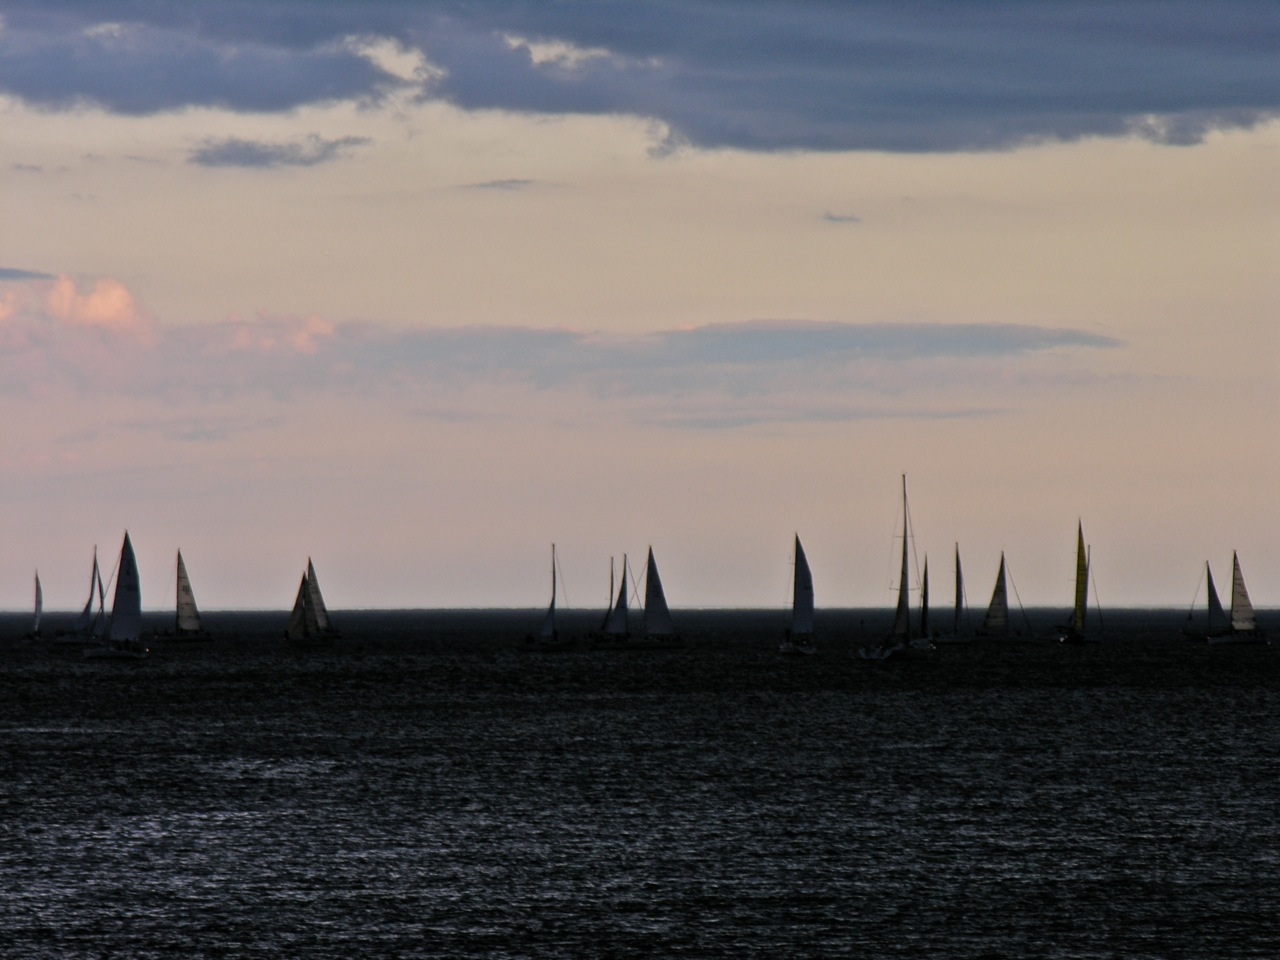 Just before dusk a squall hit all the boats!